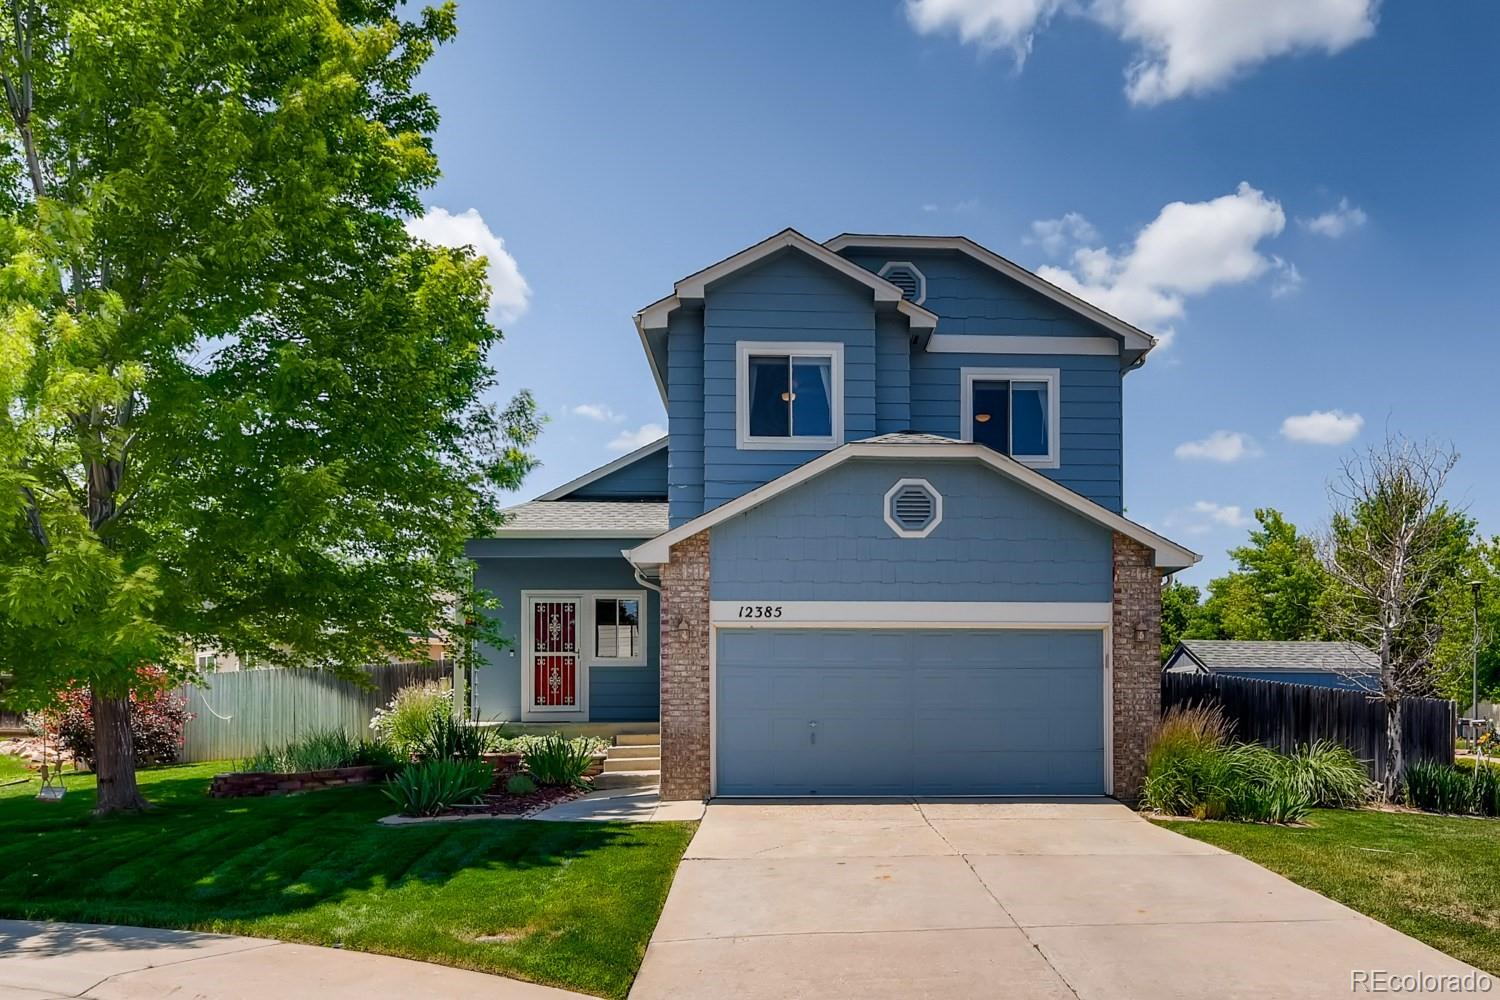 12385 Ivy Place, Brighton, CO  80602 - Featured Property